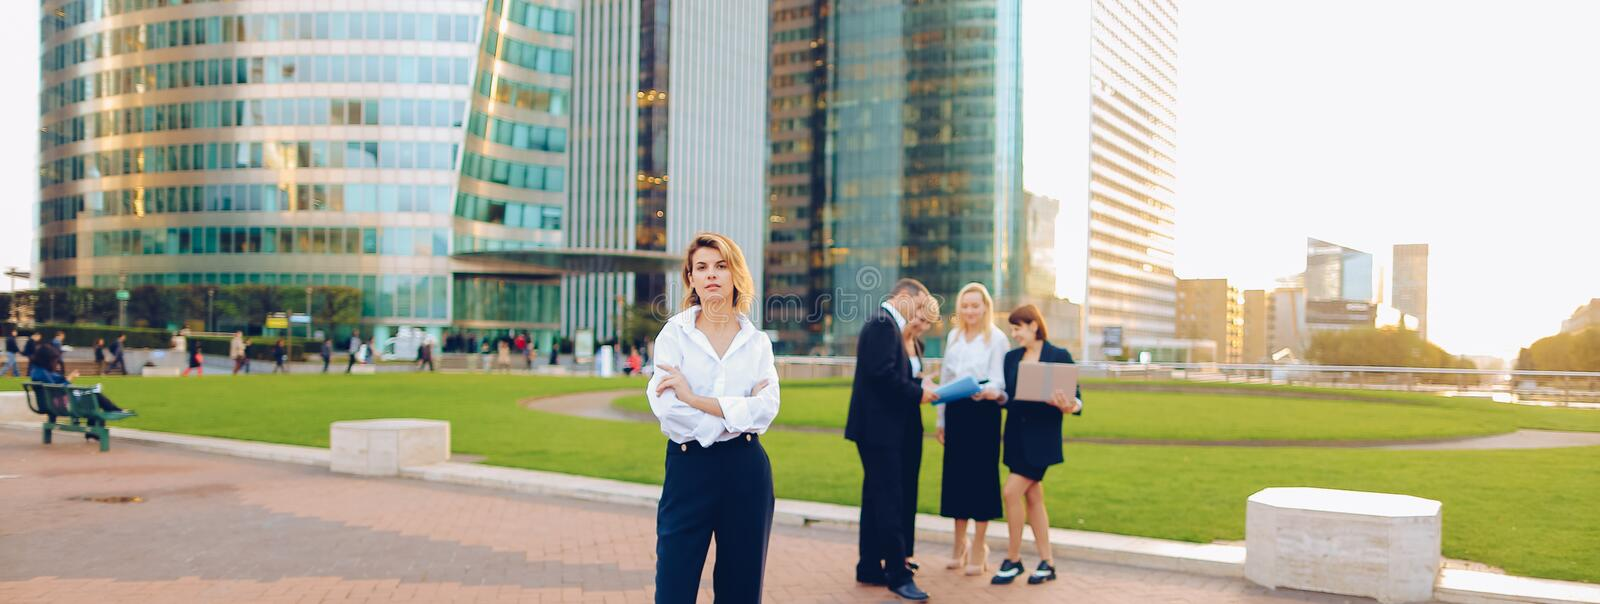 Secretary looking at camera with team members background in La D stock image